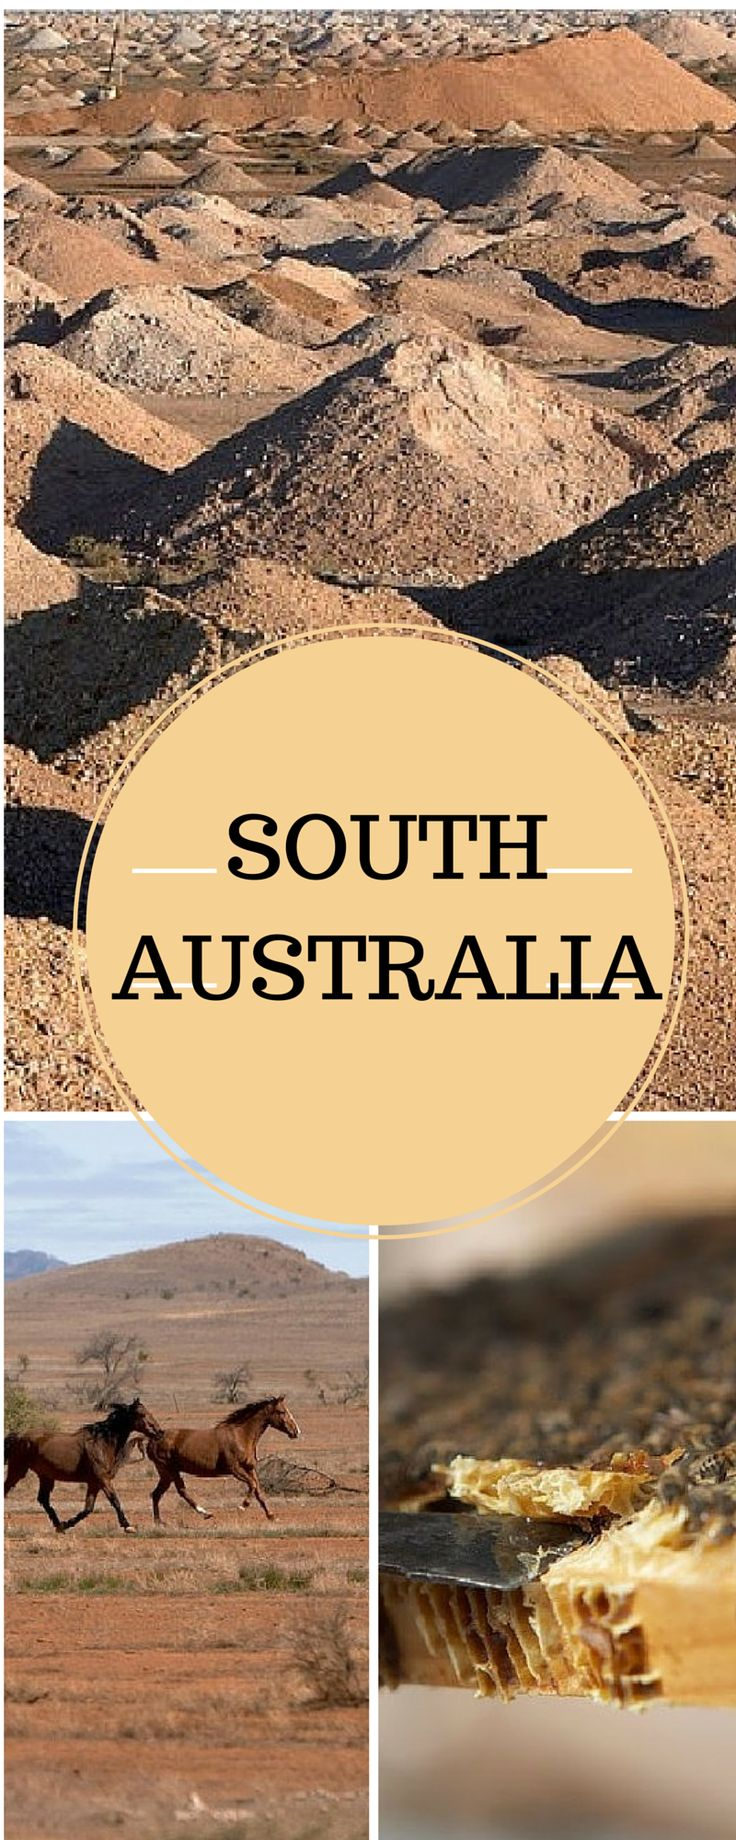 South Australia photo essay.